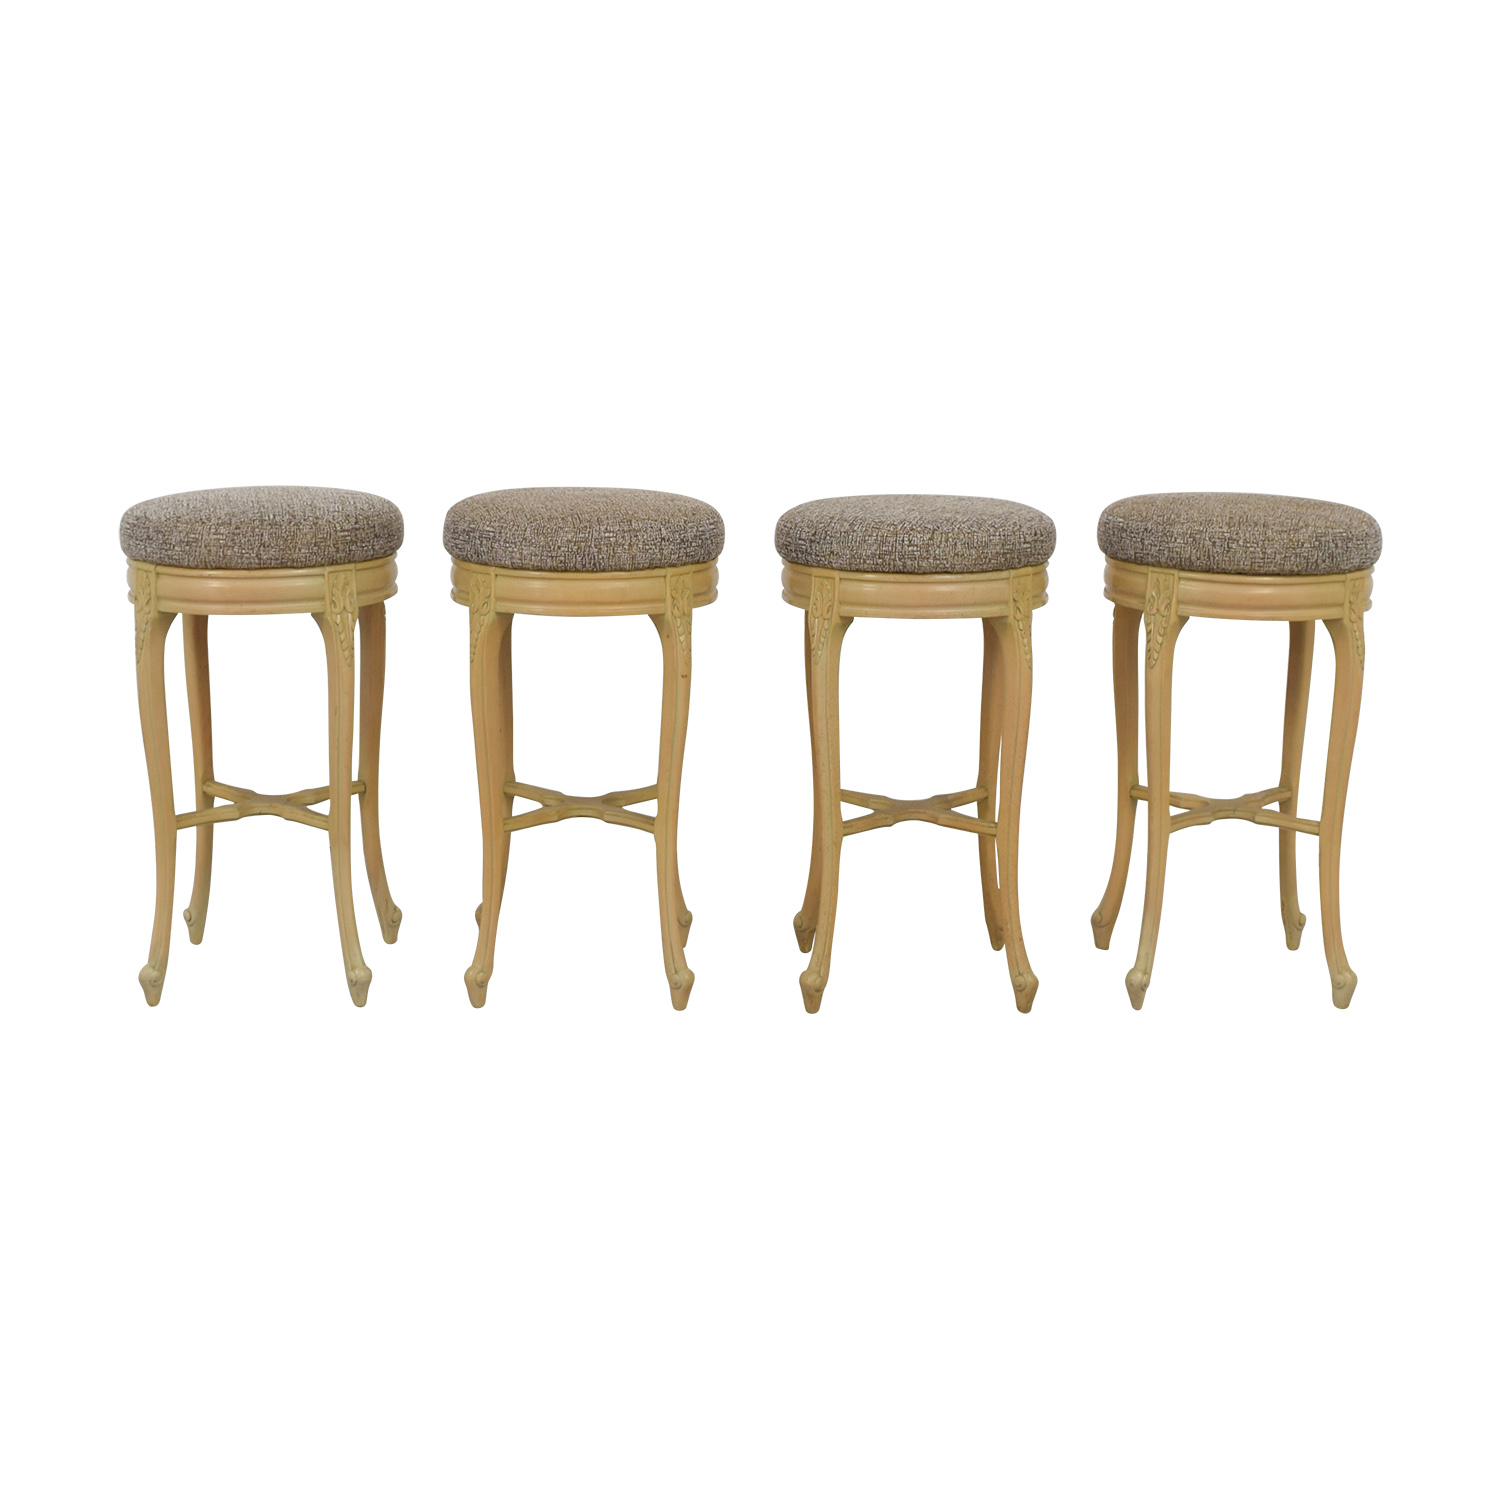 Furniture Masters Barstools sale